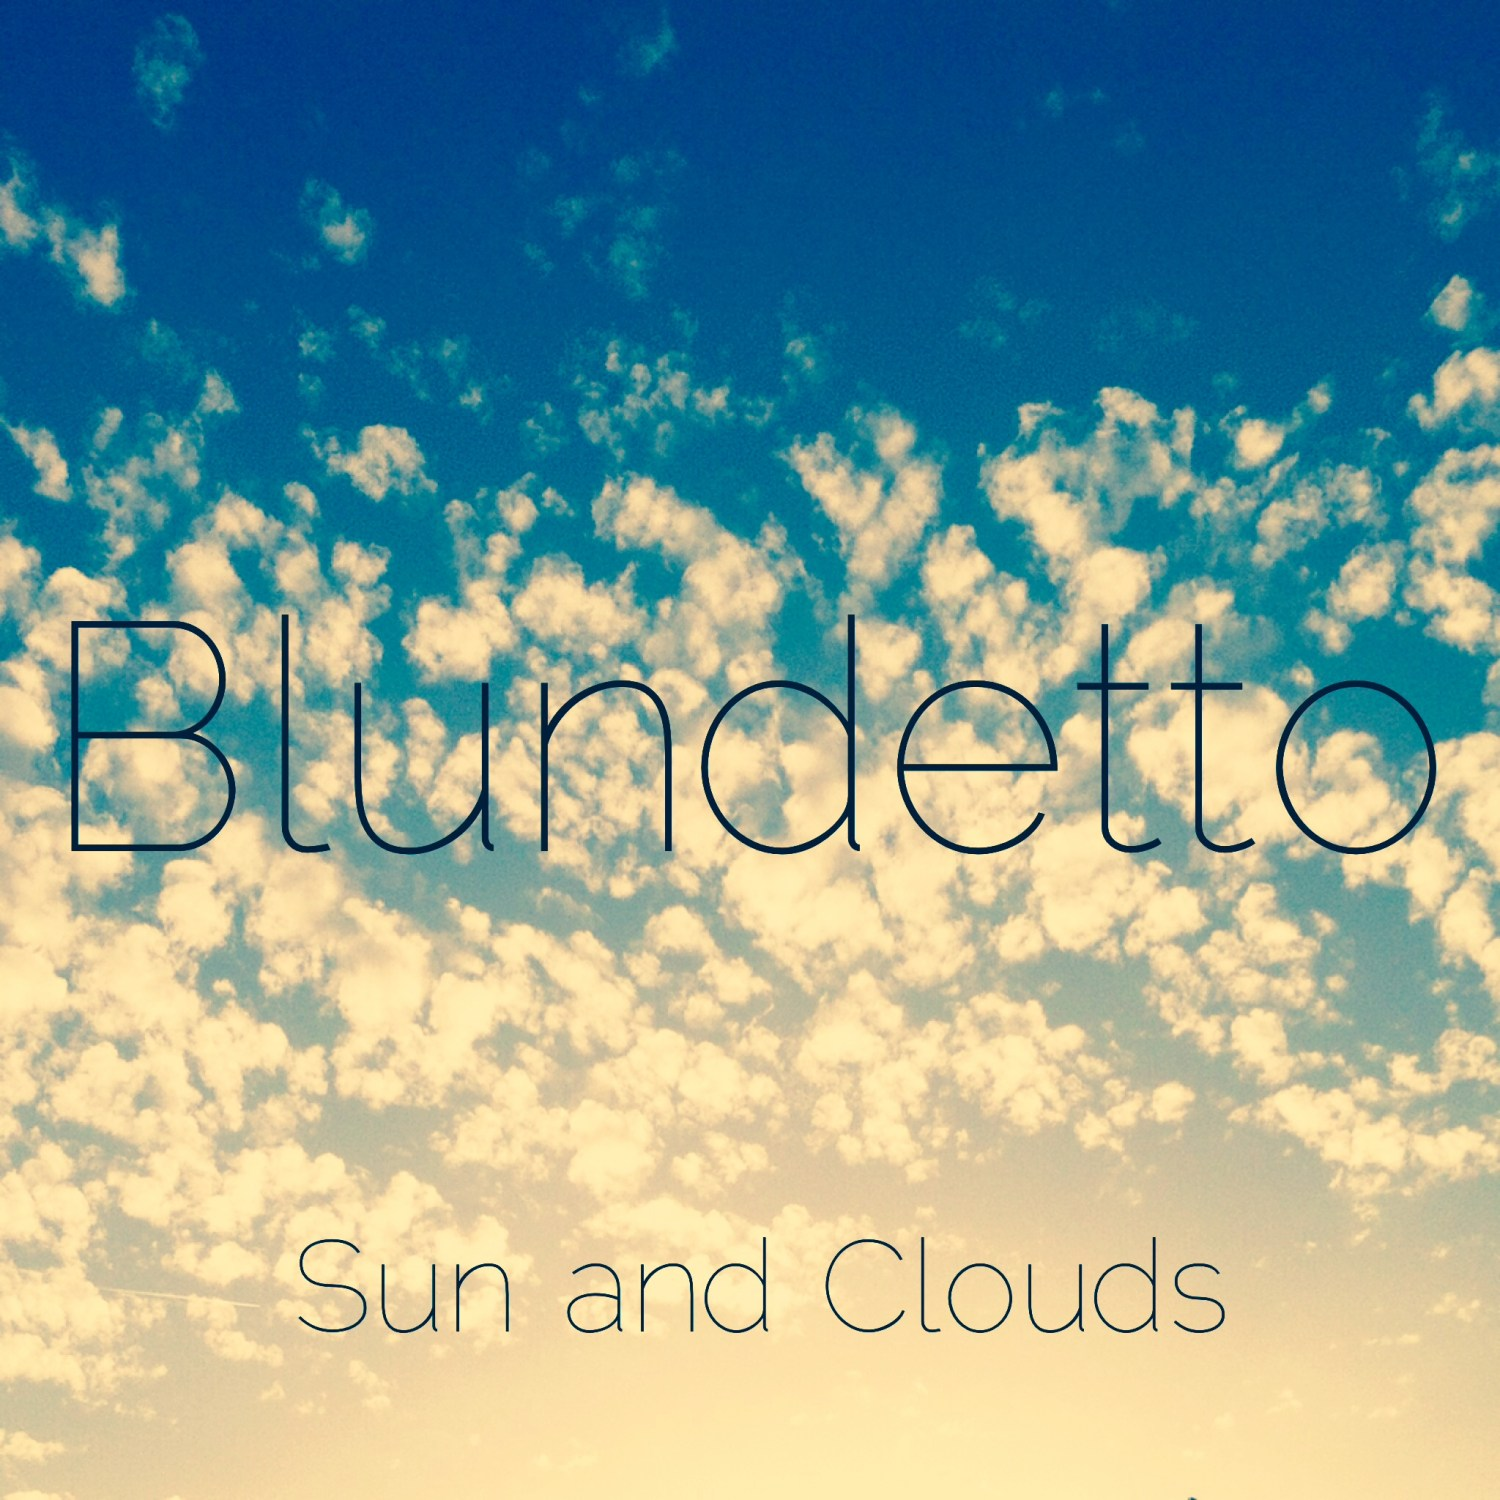 Blundetto - Sun And Clouds